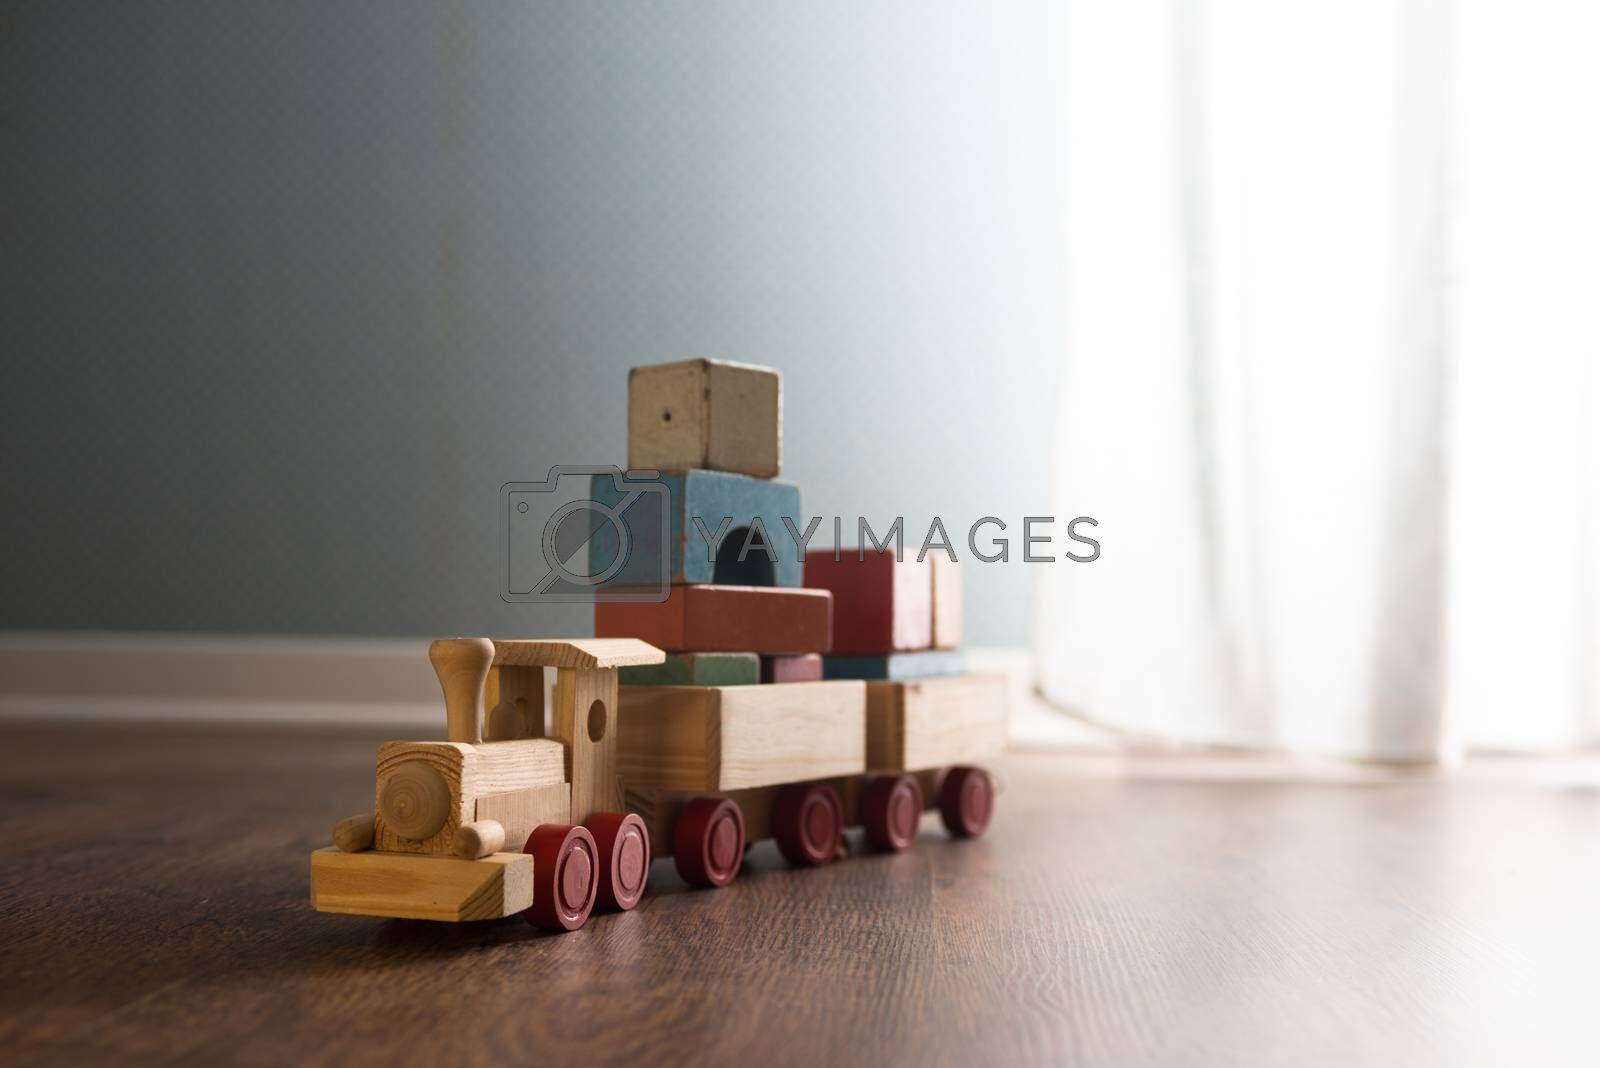 Vintage wooden toy train next to a window on hardwood floor.